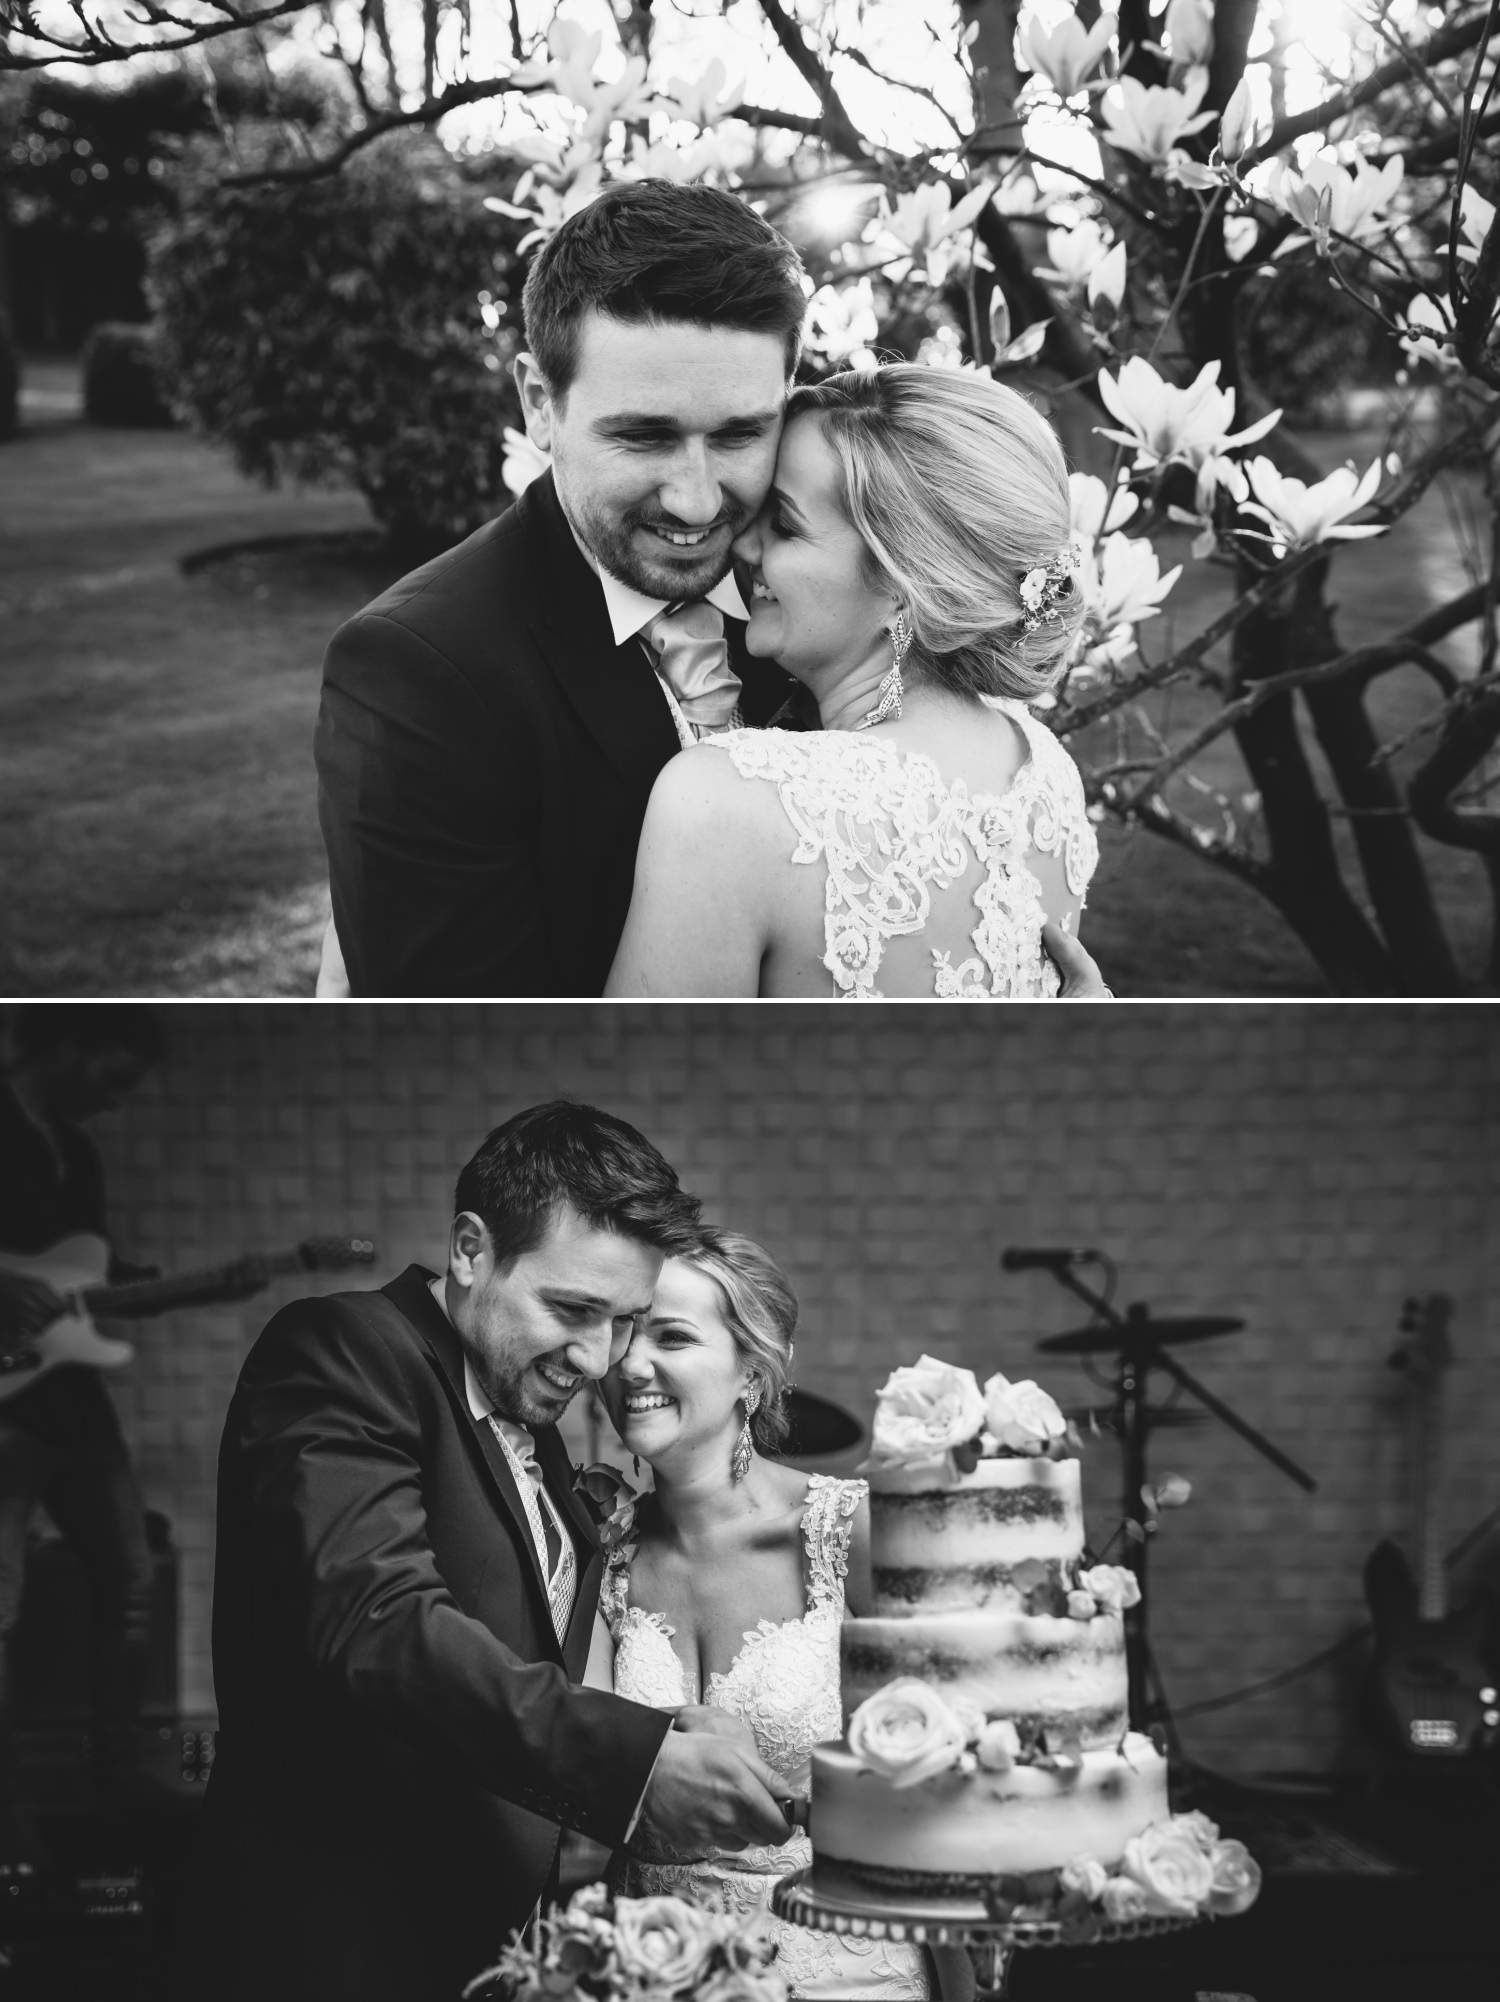 Black and white wedding photography at Cheshire venue, Colshaw Hall